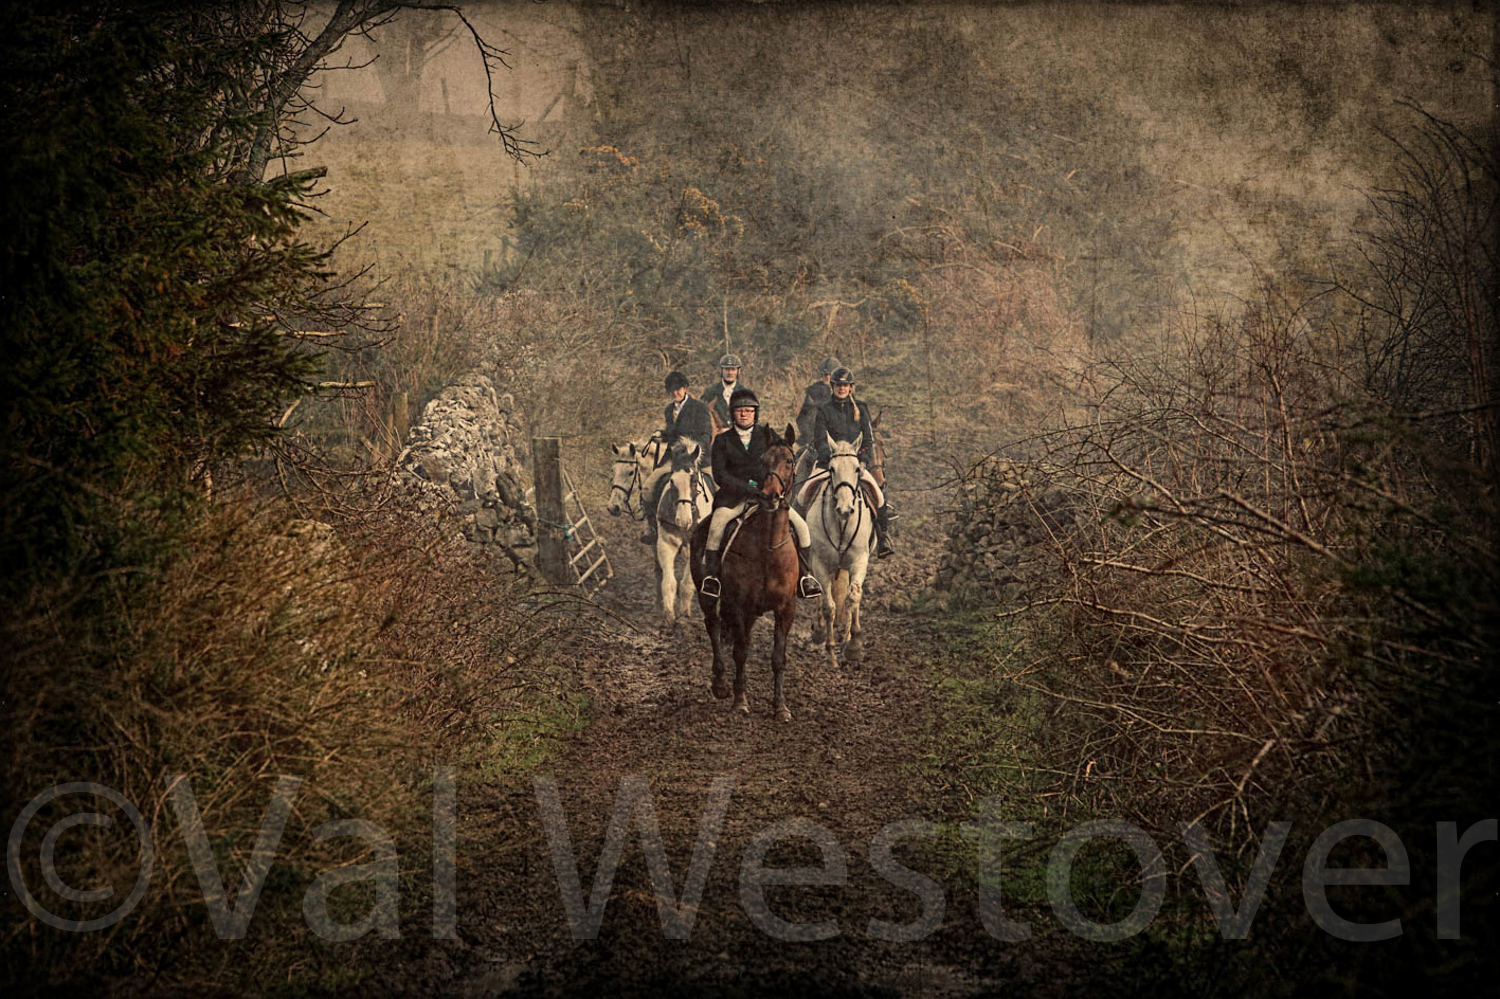 val-westover-photography--15.jpg